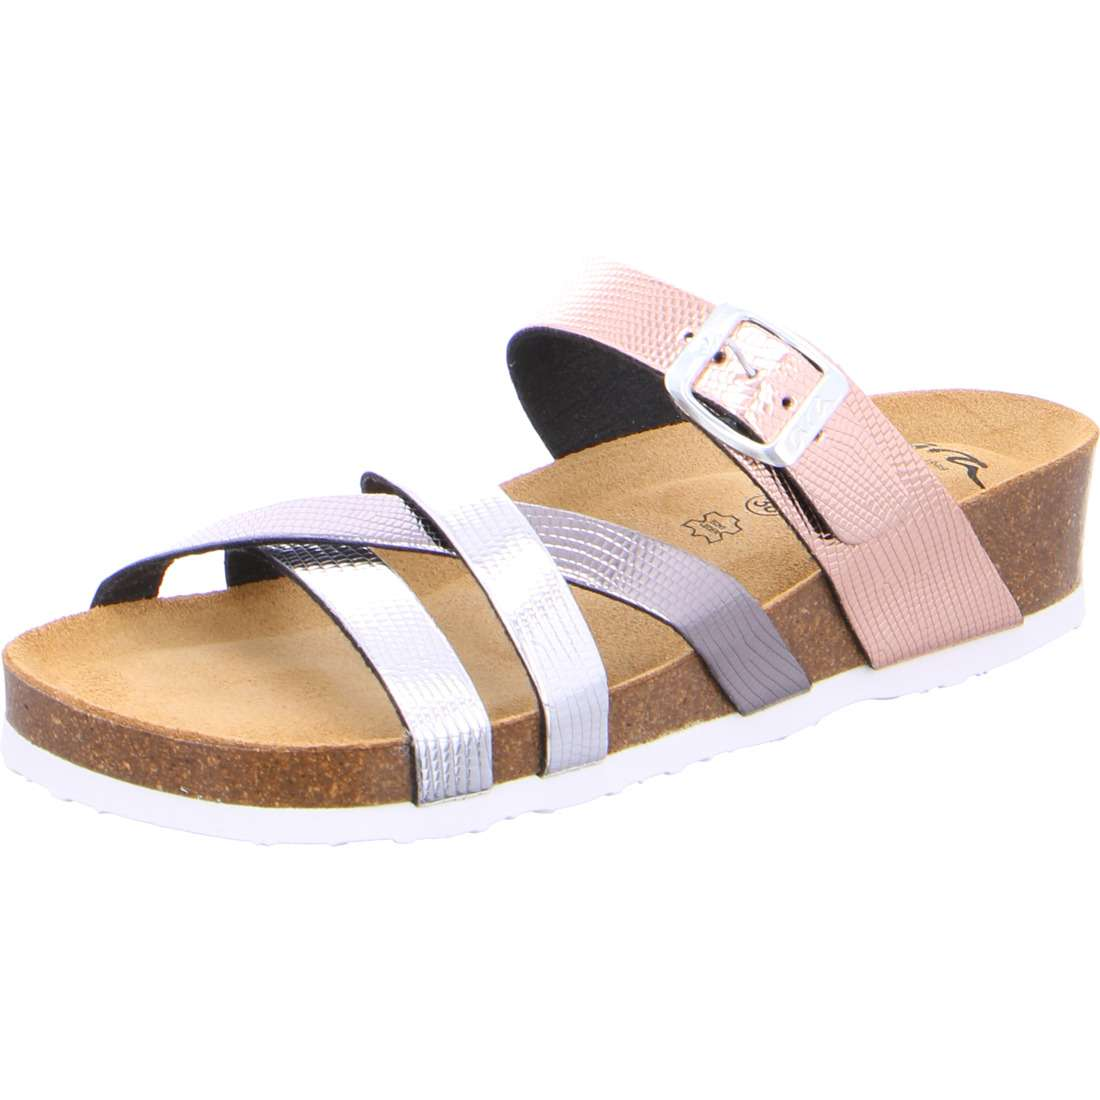 1217272 11 Ladies Bali Wedge Mule Sandals for sale online Ireland pink